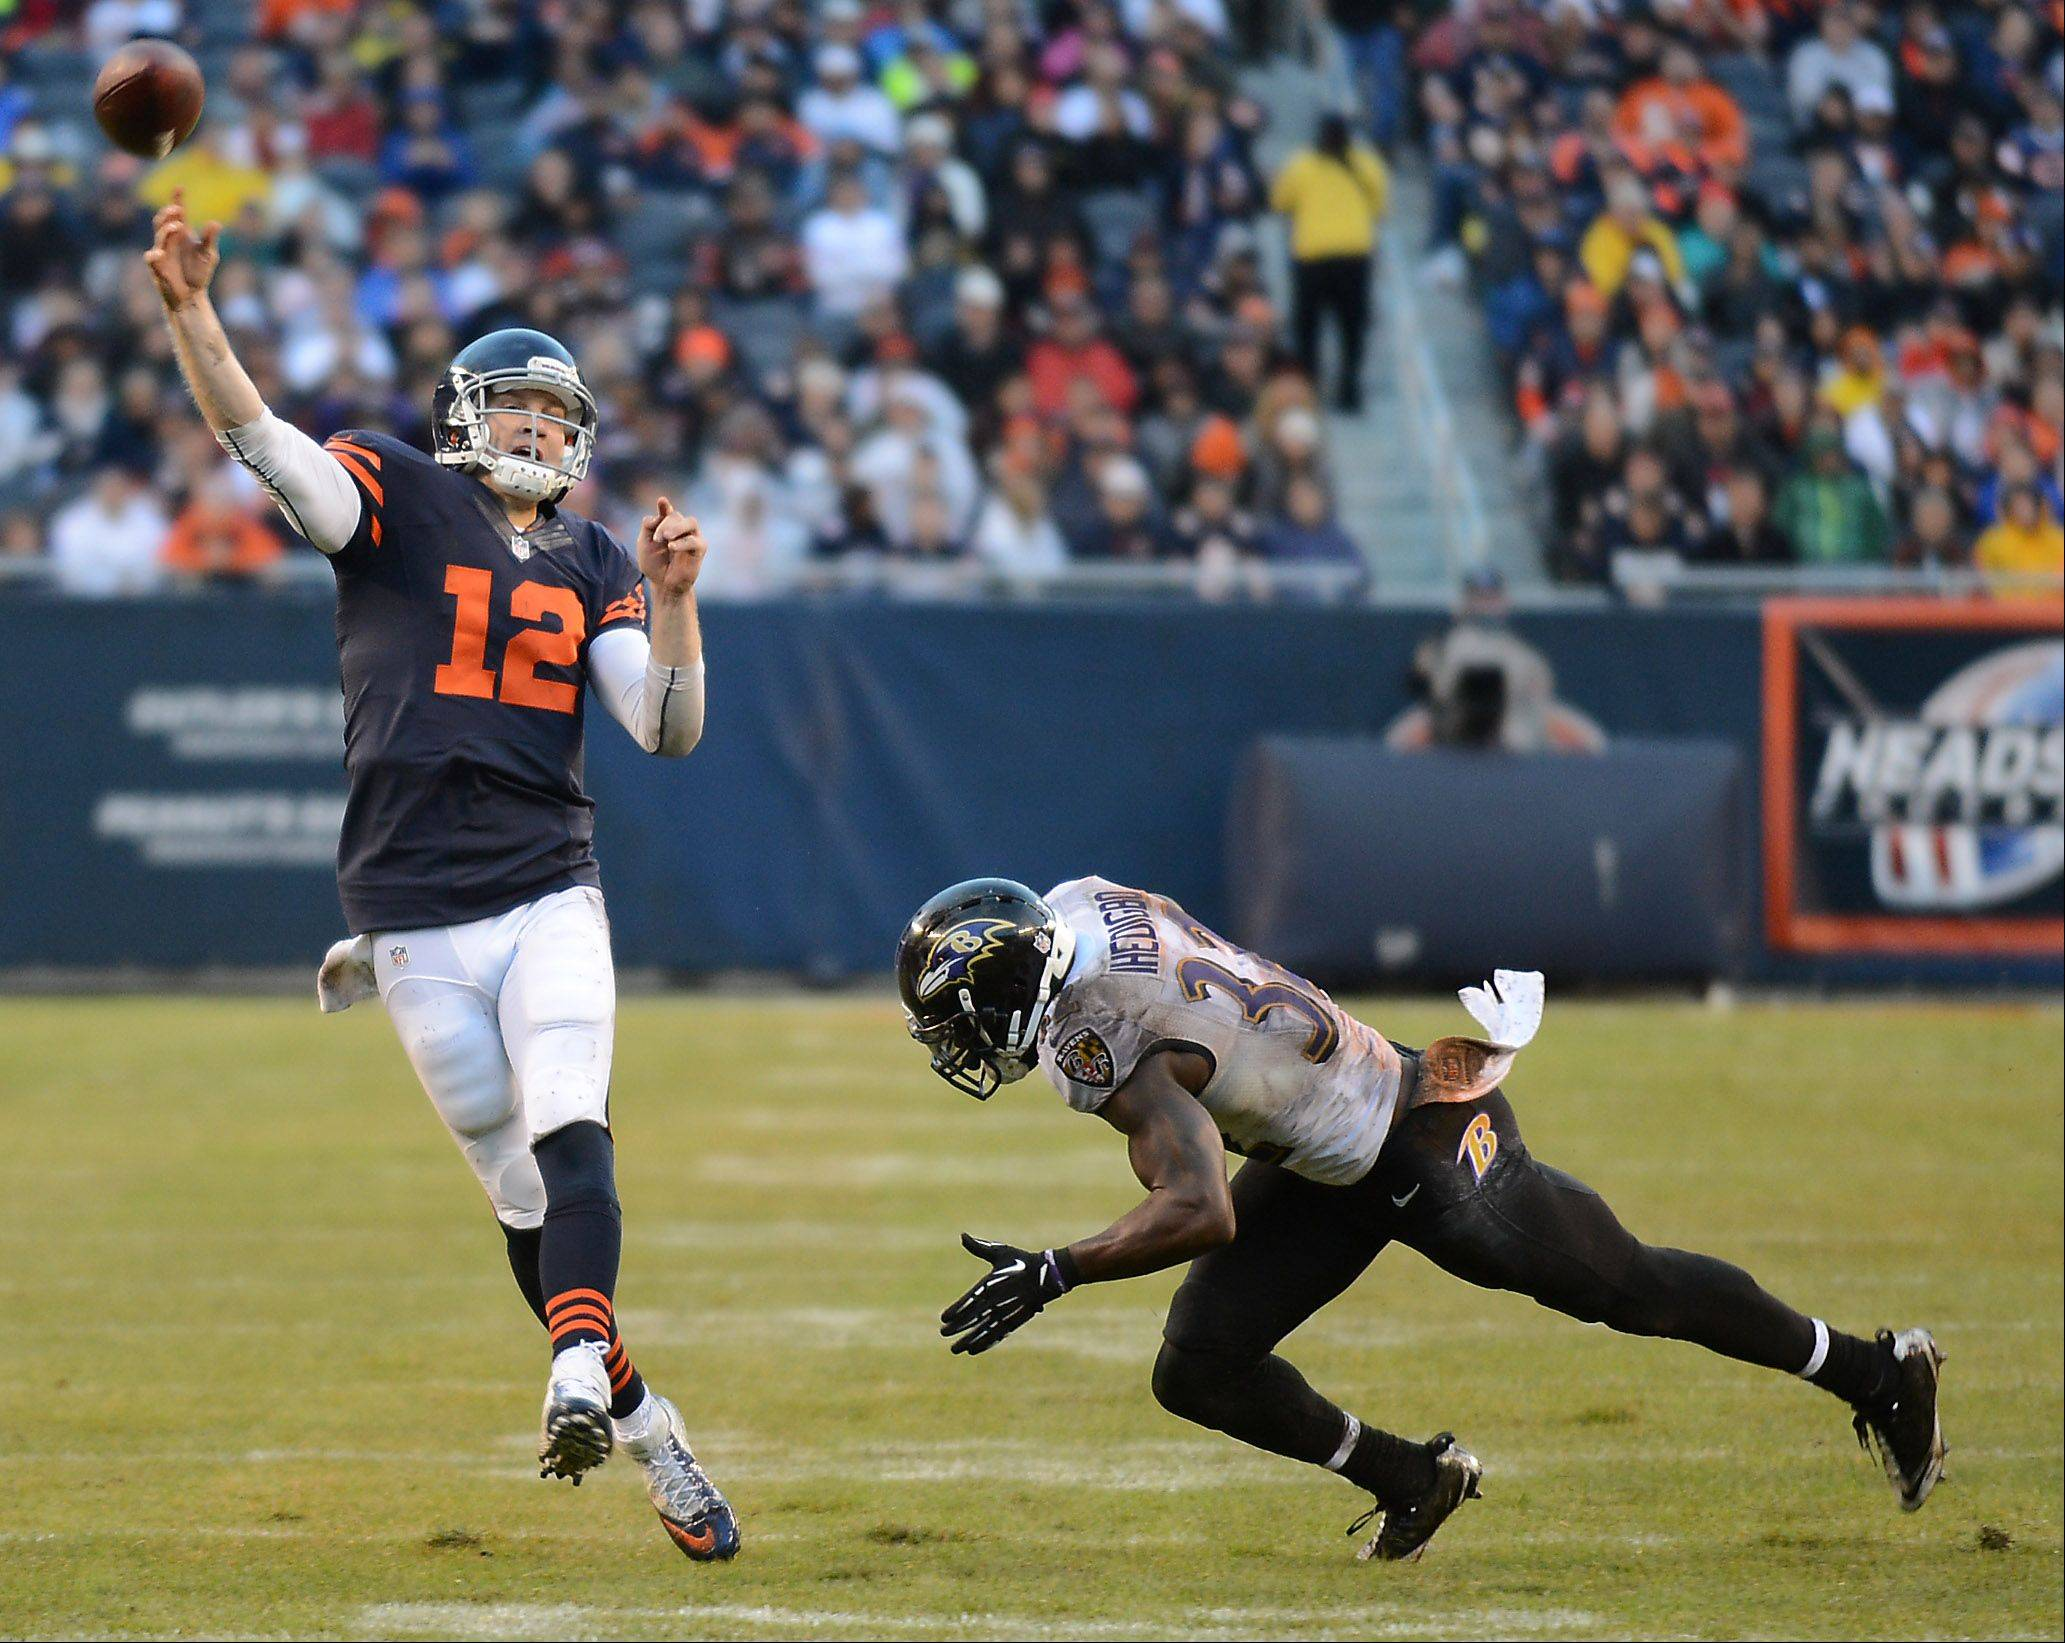 Josh McCown fires a pass downfield during the Bears' victory over Baltimore at Soldier Field. McCown is 2-0 as the team's starter.